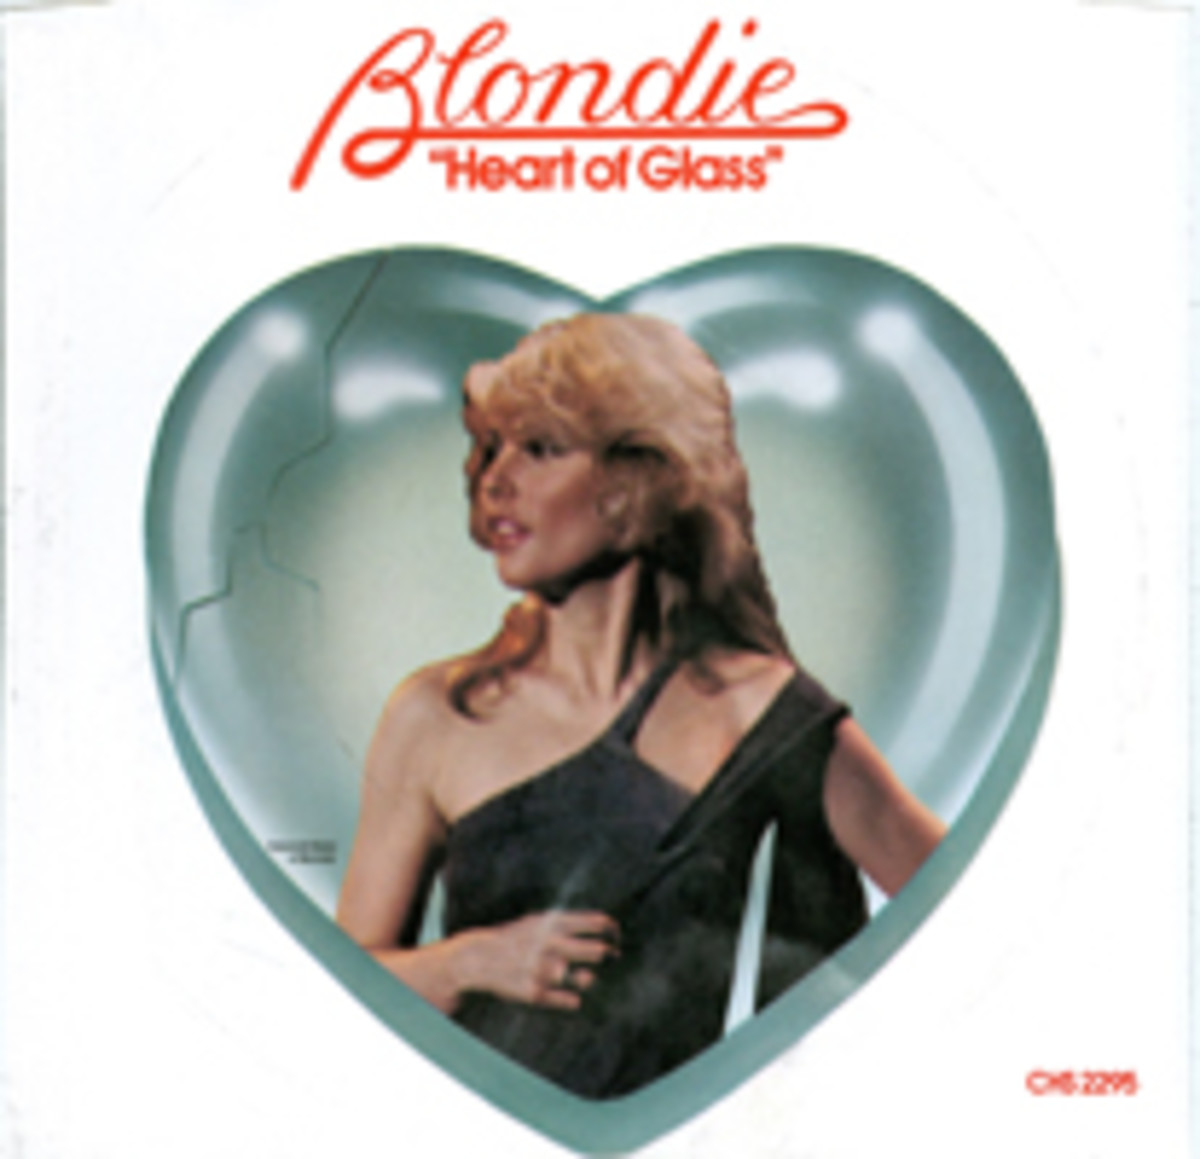 Blondie Heart of Glass Picture Sleeve